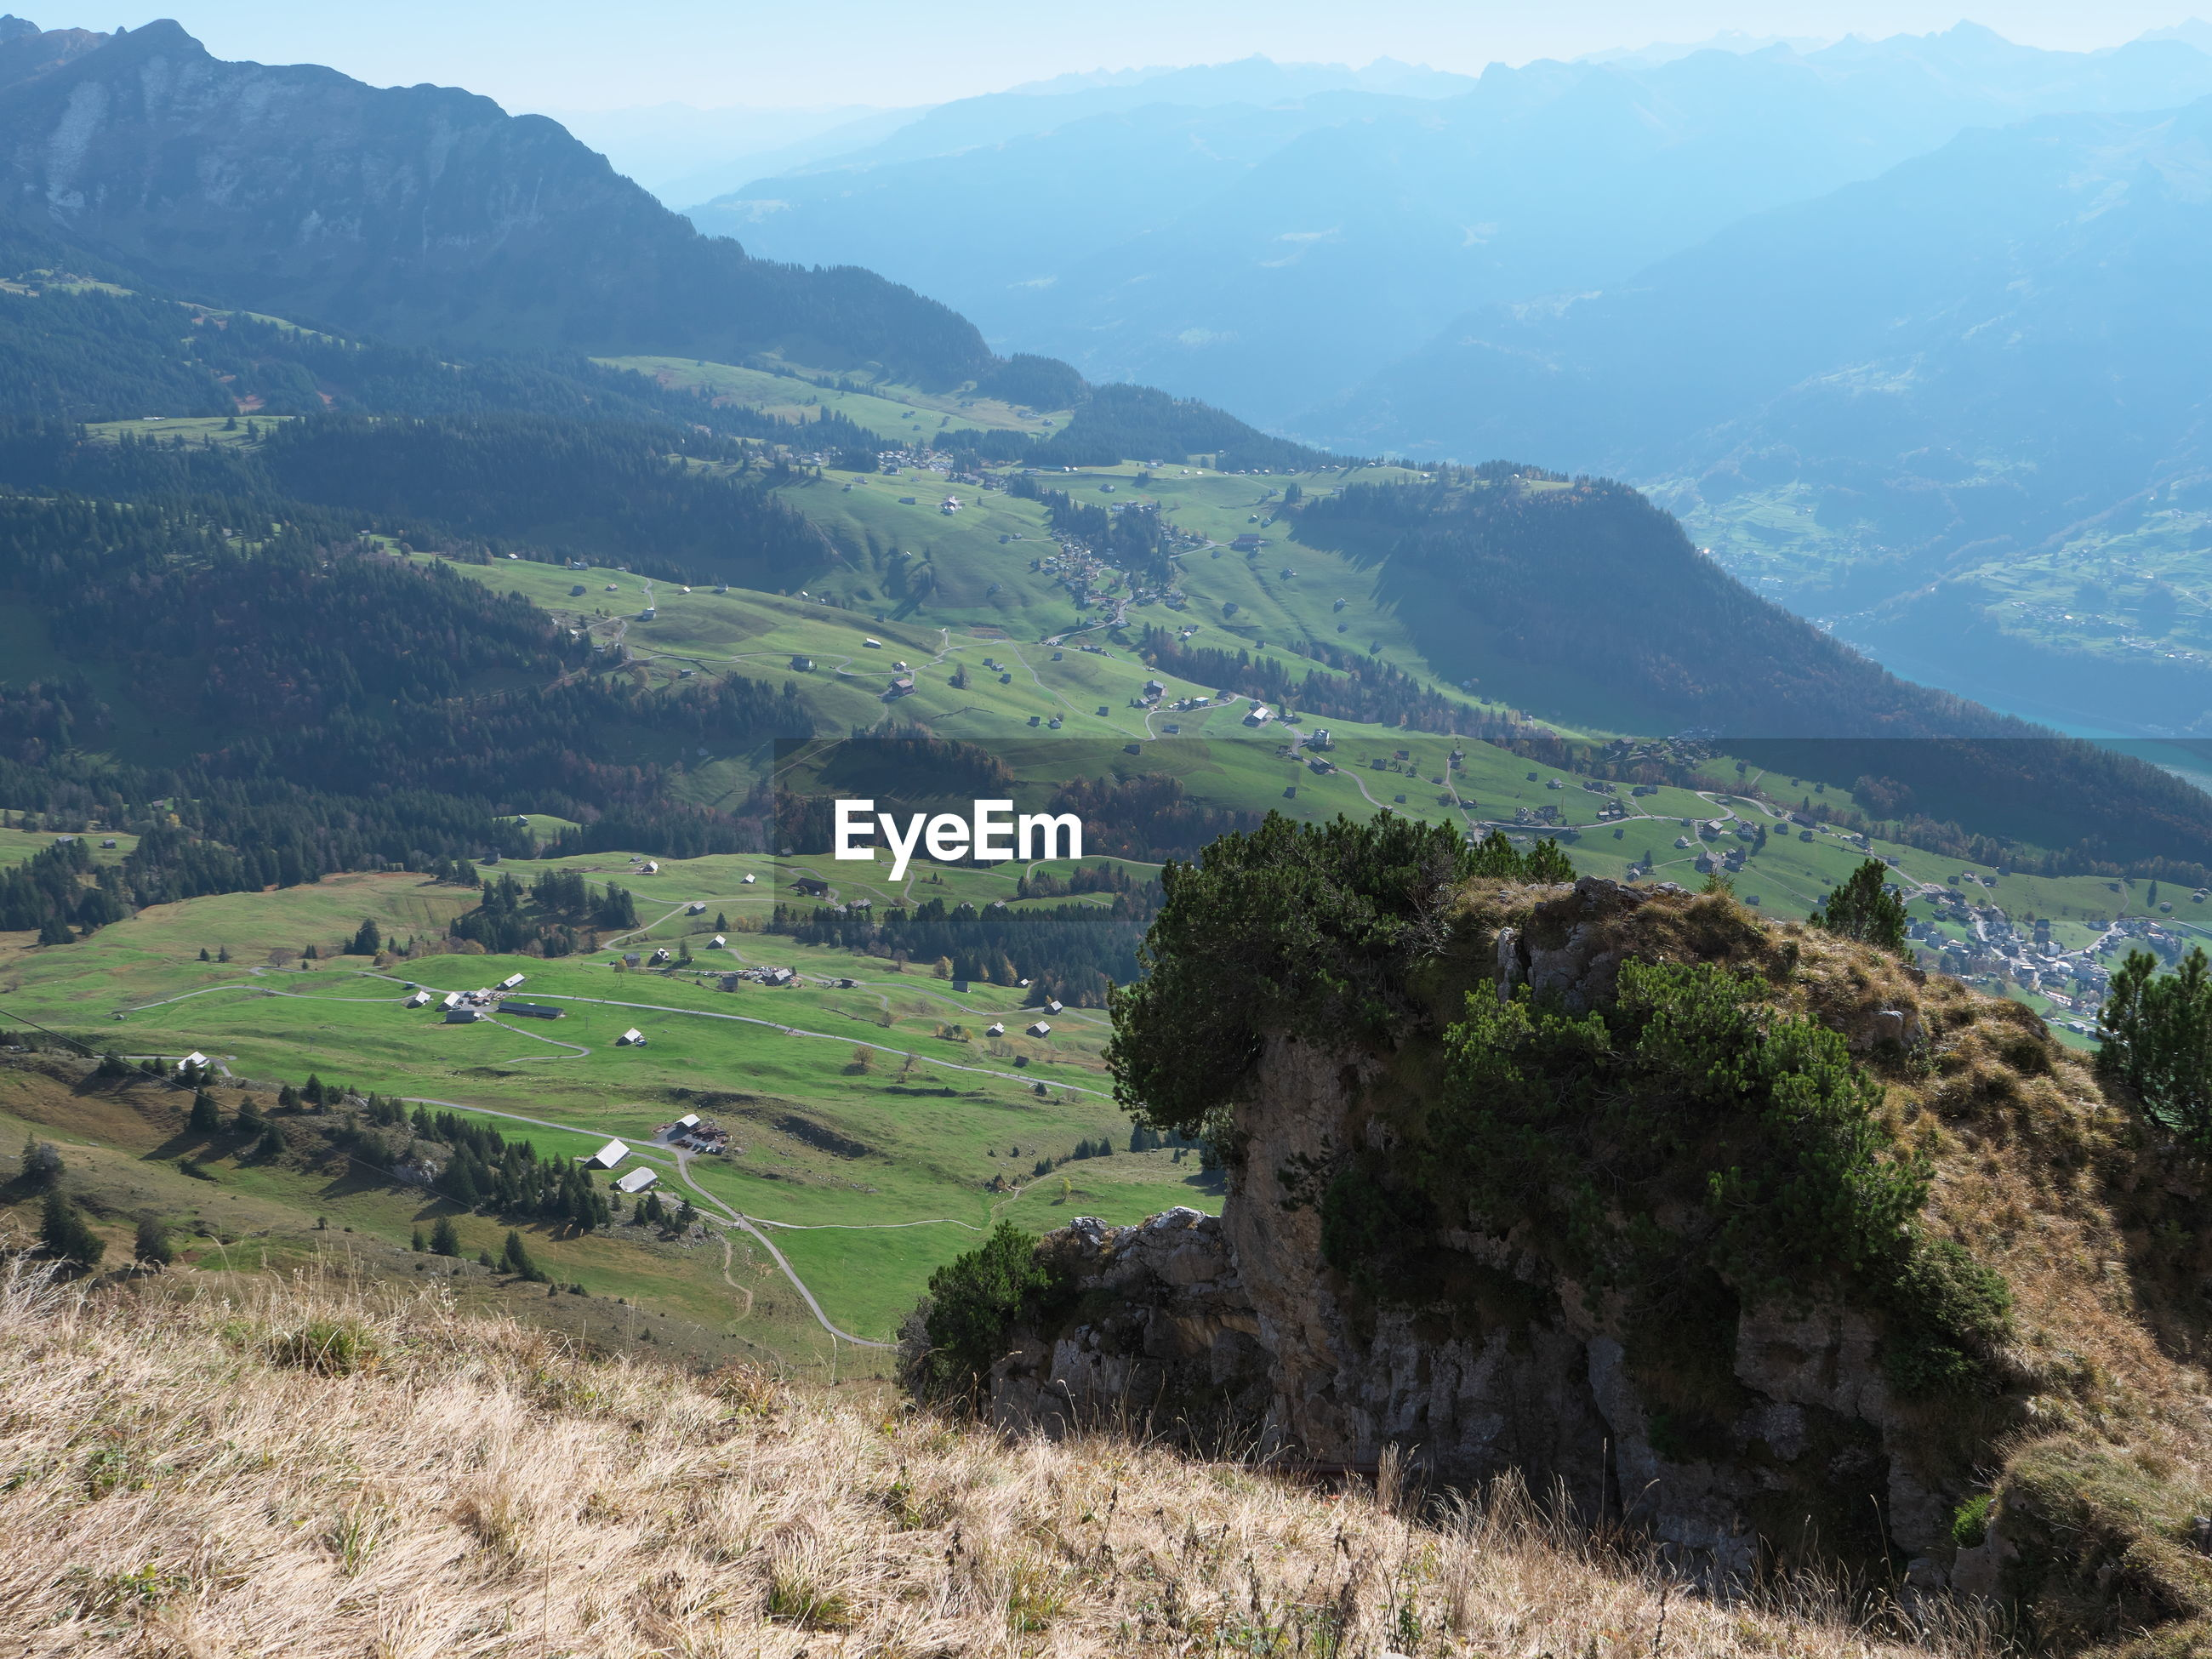 SCENIC VIEW OF LANDSCAPE AND MOUNTAIN